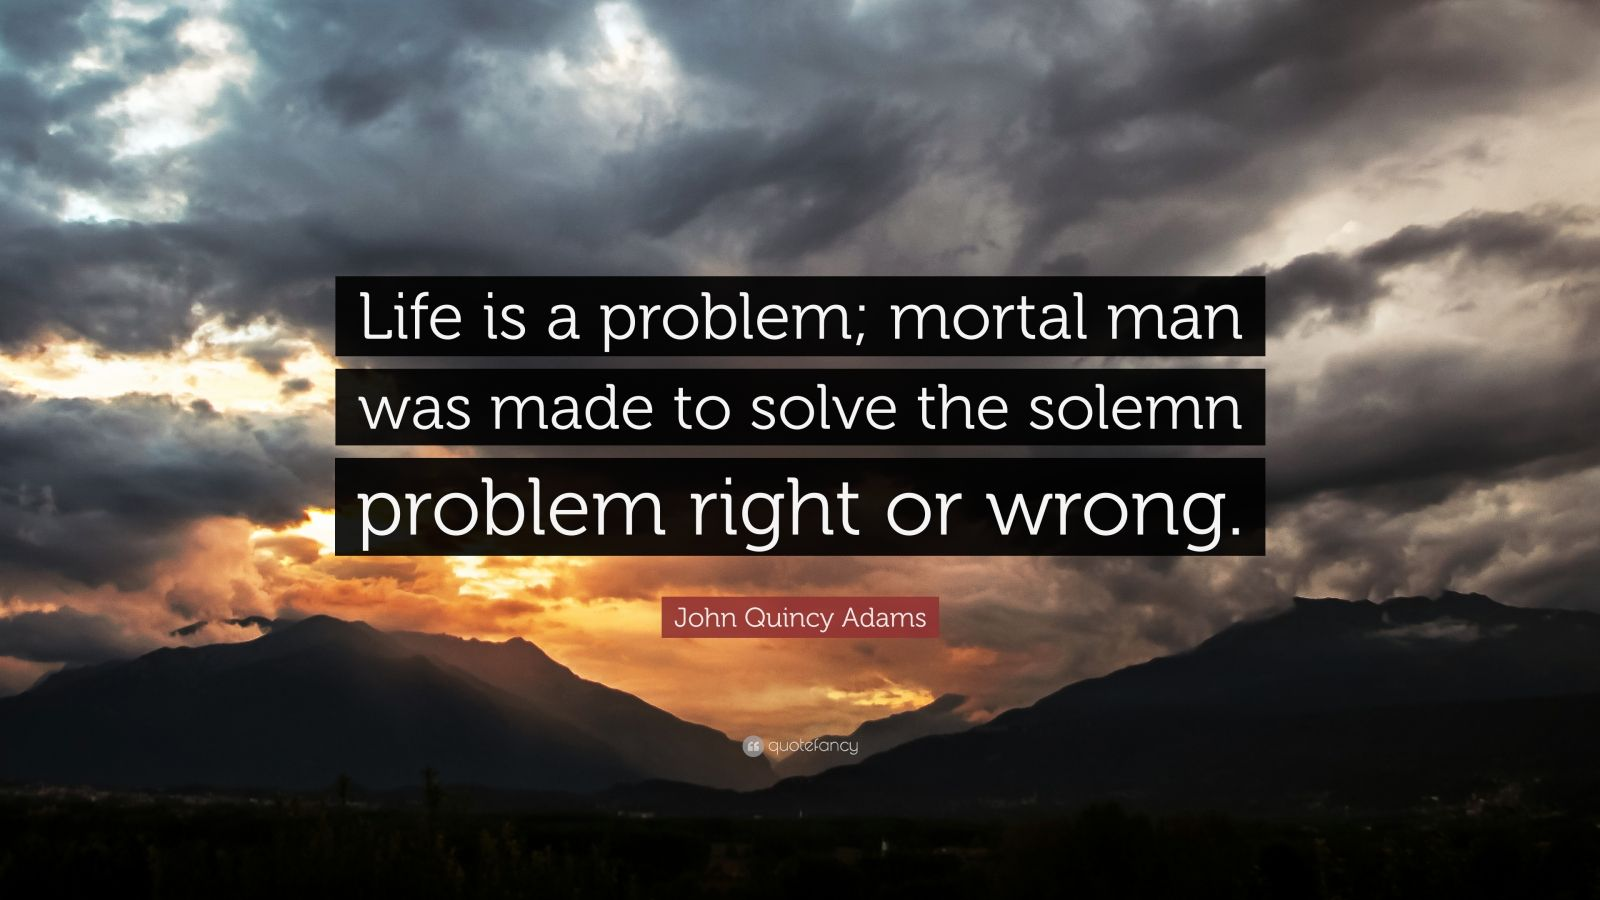 """John Quincy Adams Quote: """"Life is a problem; mortal man was made to solve the solemn problem right or wrong."""""""